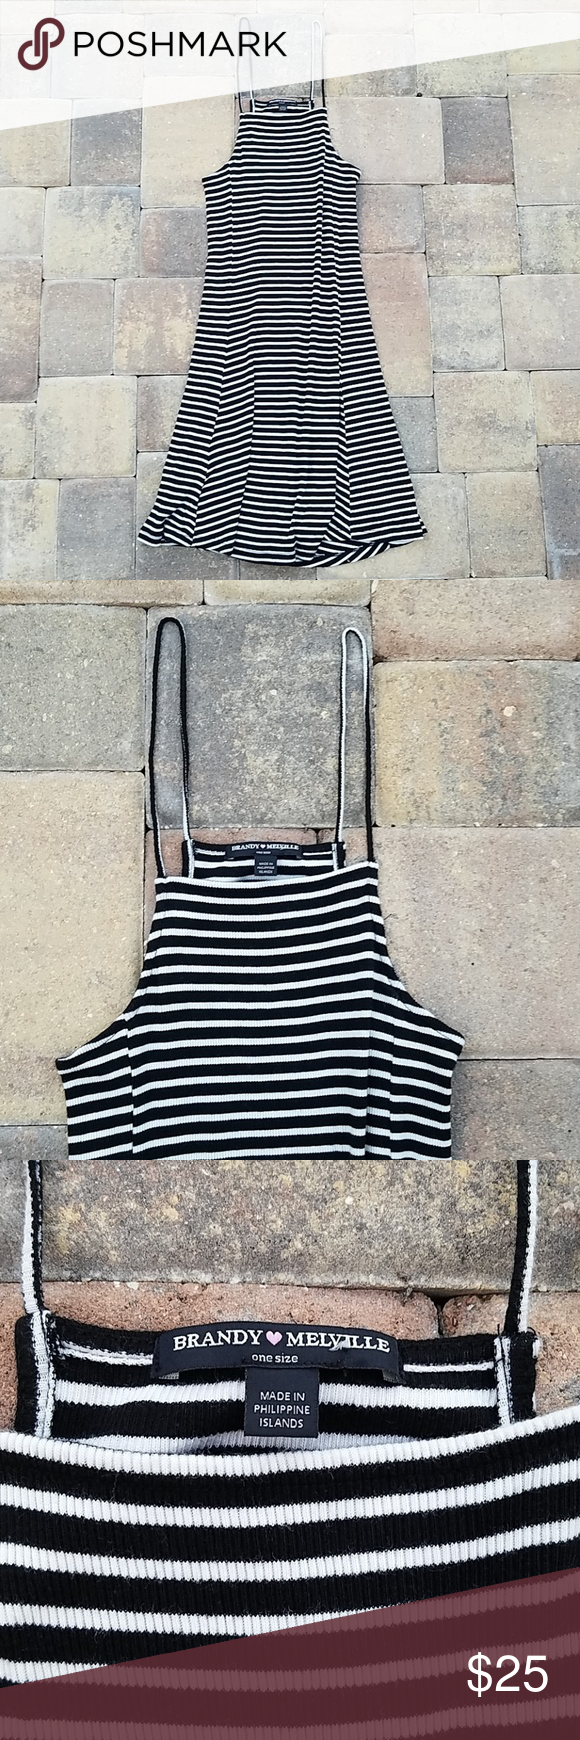 Brandy Melville Dress - Black & White Stripes Brandy Melville black and white stripe sleeveless/spaghetti strap short sundress. One size (usually fits XS-M). Straps are long (not adjustable so they may need to be hemmed) and dress is stretchy. Ribbed material. 60% cotton, 40% modal. Very good condition overall but in my opinion the straps are a tad stretched out long. See measurements below.  Approximate measurements when flat: Armpit to armpit 12 Bottom of armpit to top of strap 11 1/4 Waist #shortsundress